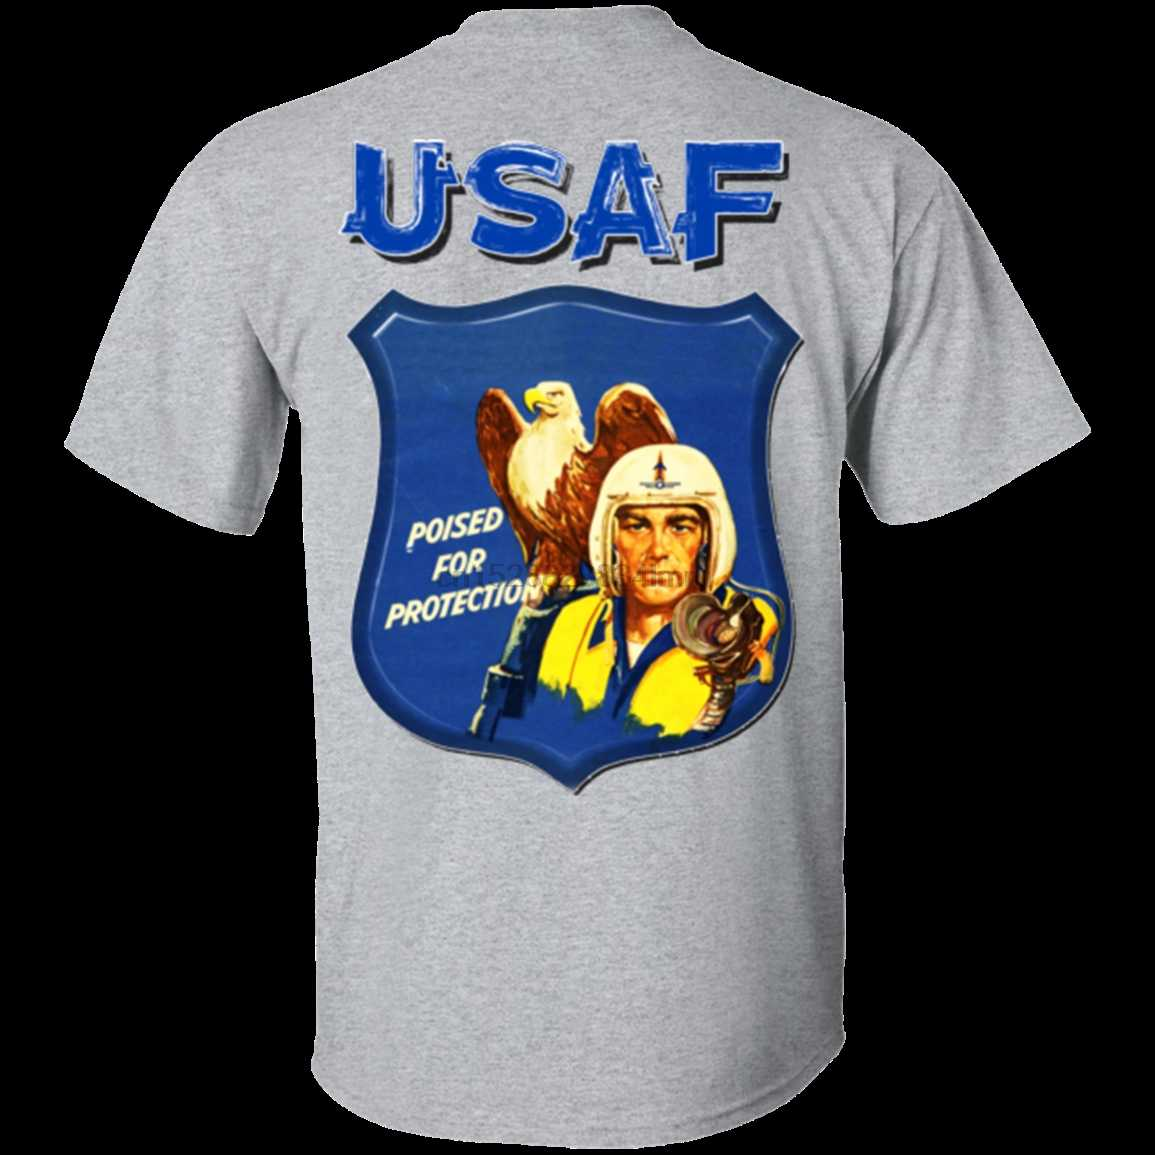 2019 New Summer Fashion Cool Tee Shirt United States Air Force Poster  Ultra Cotton T-Shirt Casual T-Shirt